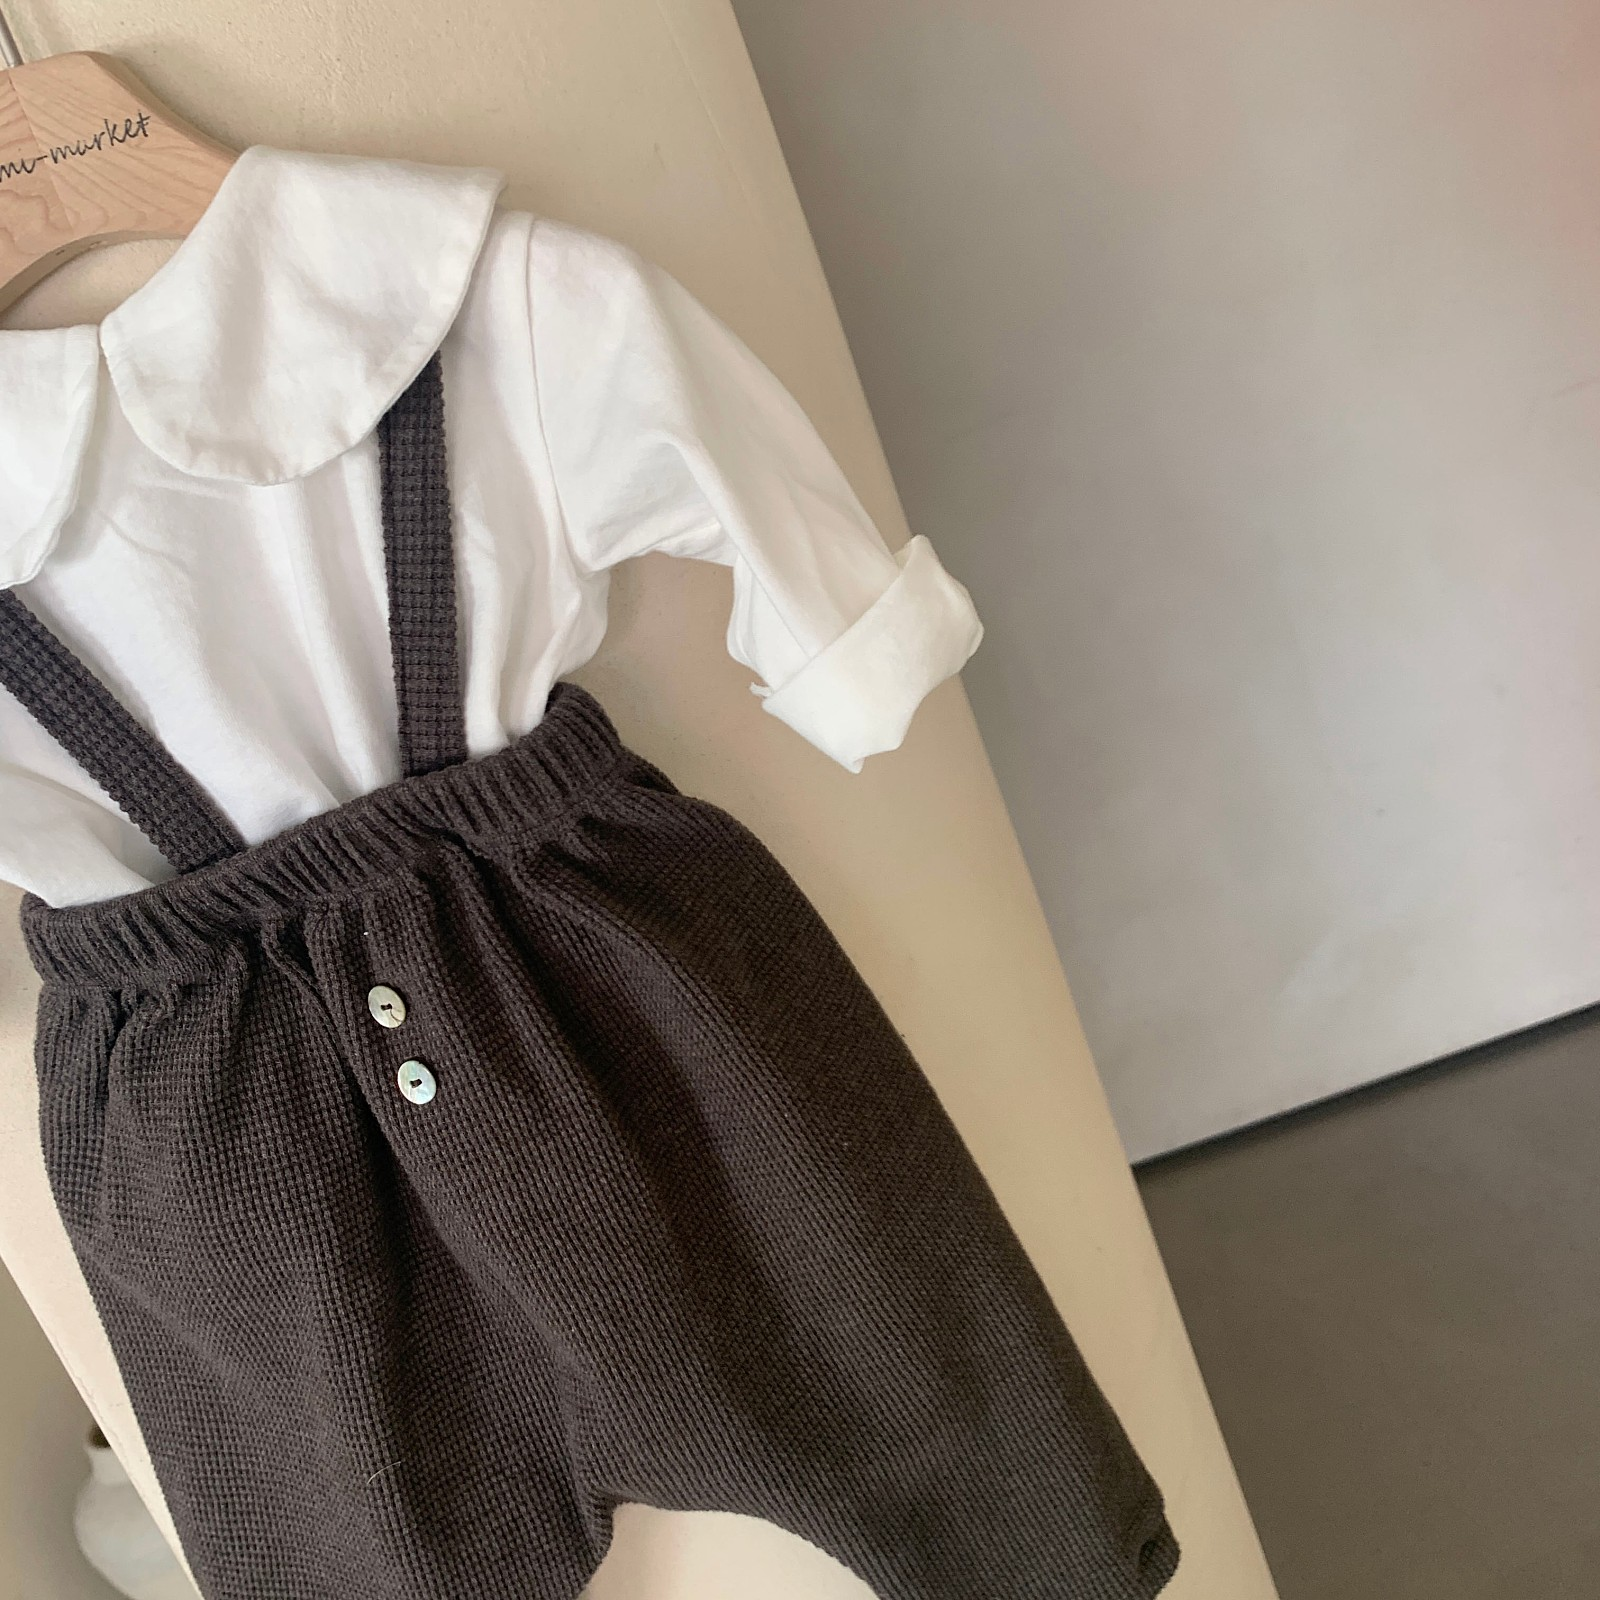 MIMI MARKET - Korean Children Fashion - #Kfashion4kids - Cookie Suspender Pants - 4